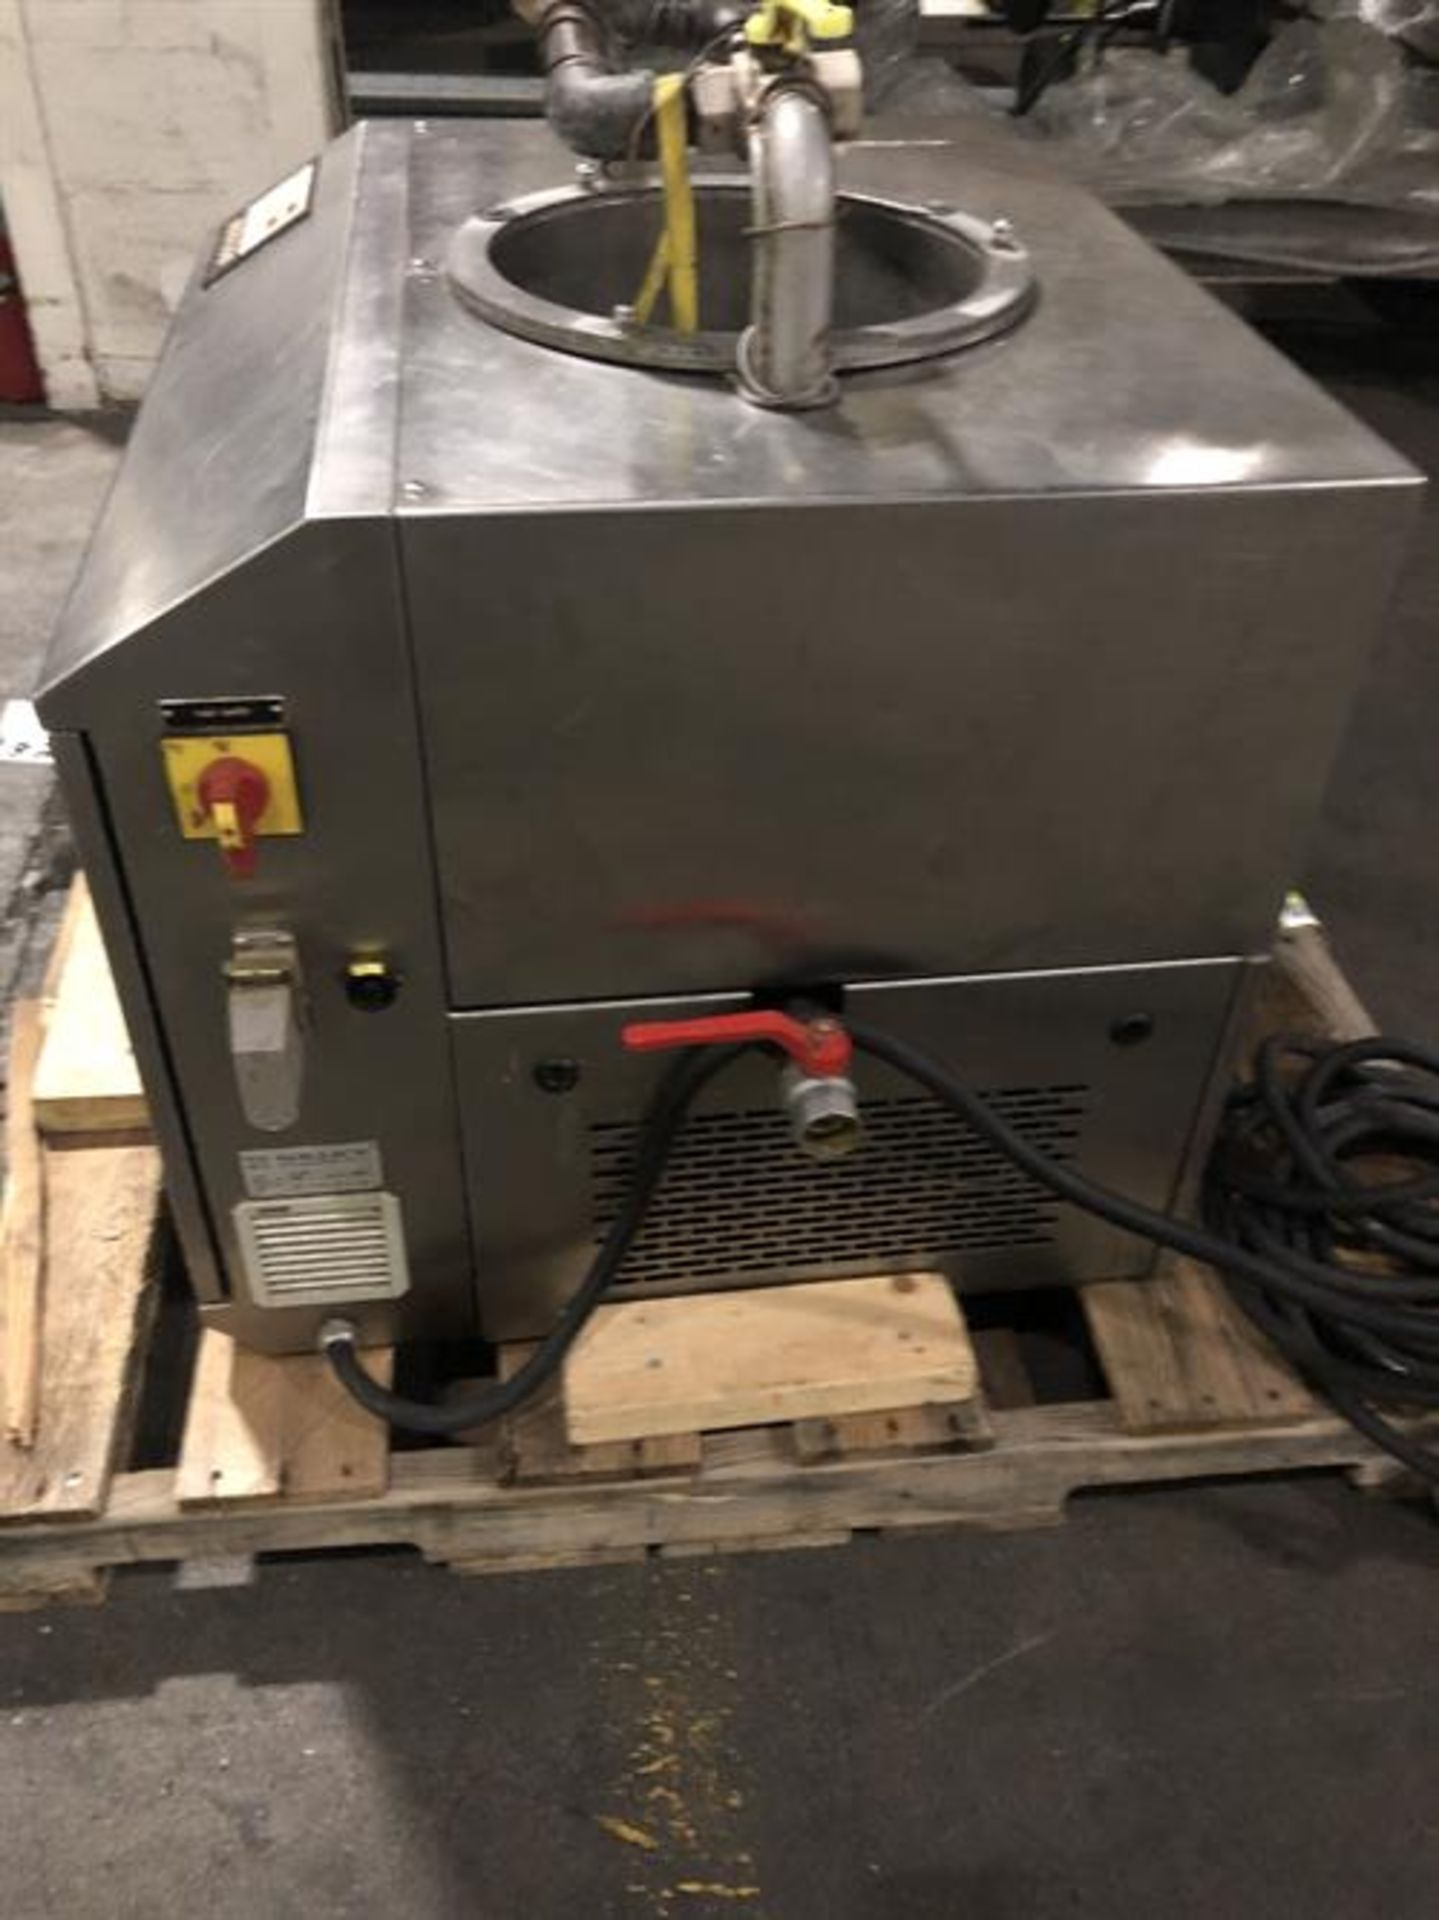 Sollich Model TF 100 Tempering Unit - Serial number 2682 - Built new in 1998 - 80kg/hour - Image 4 of 6